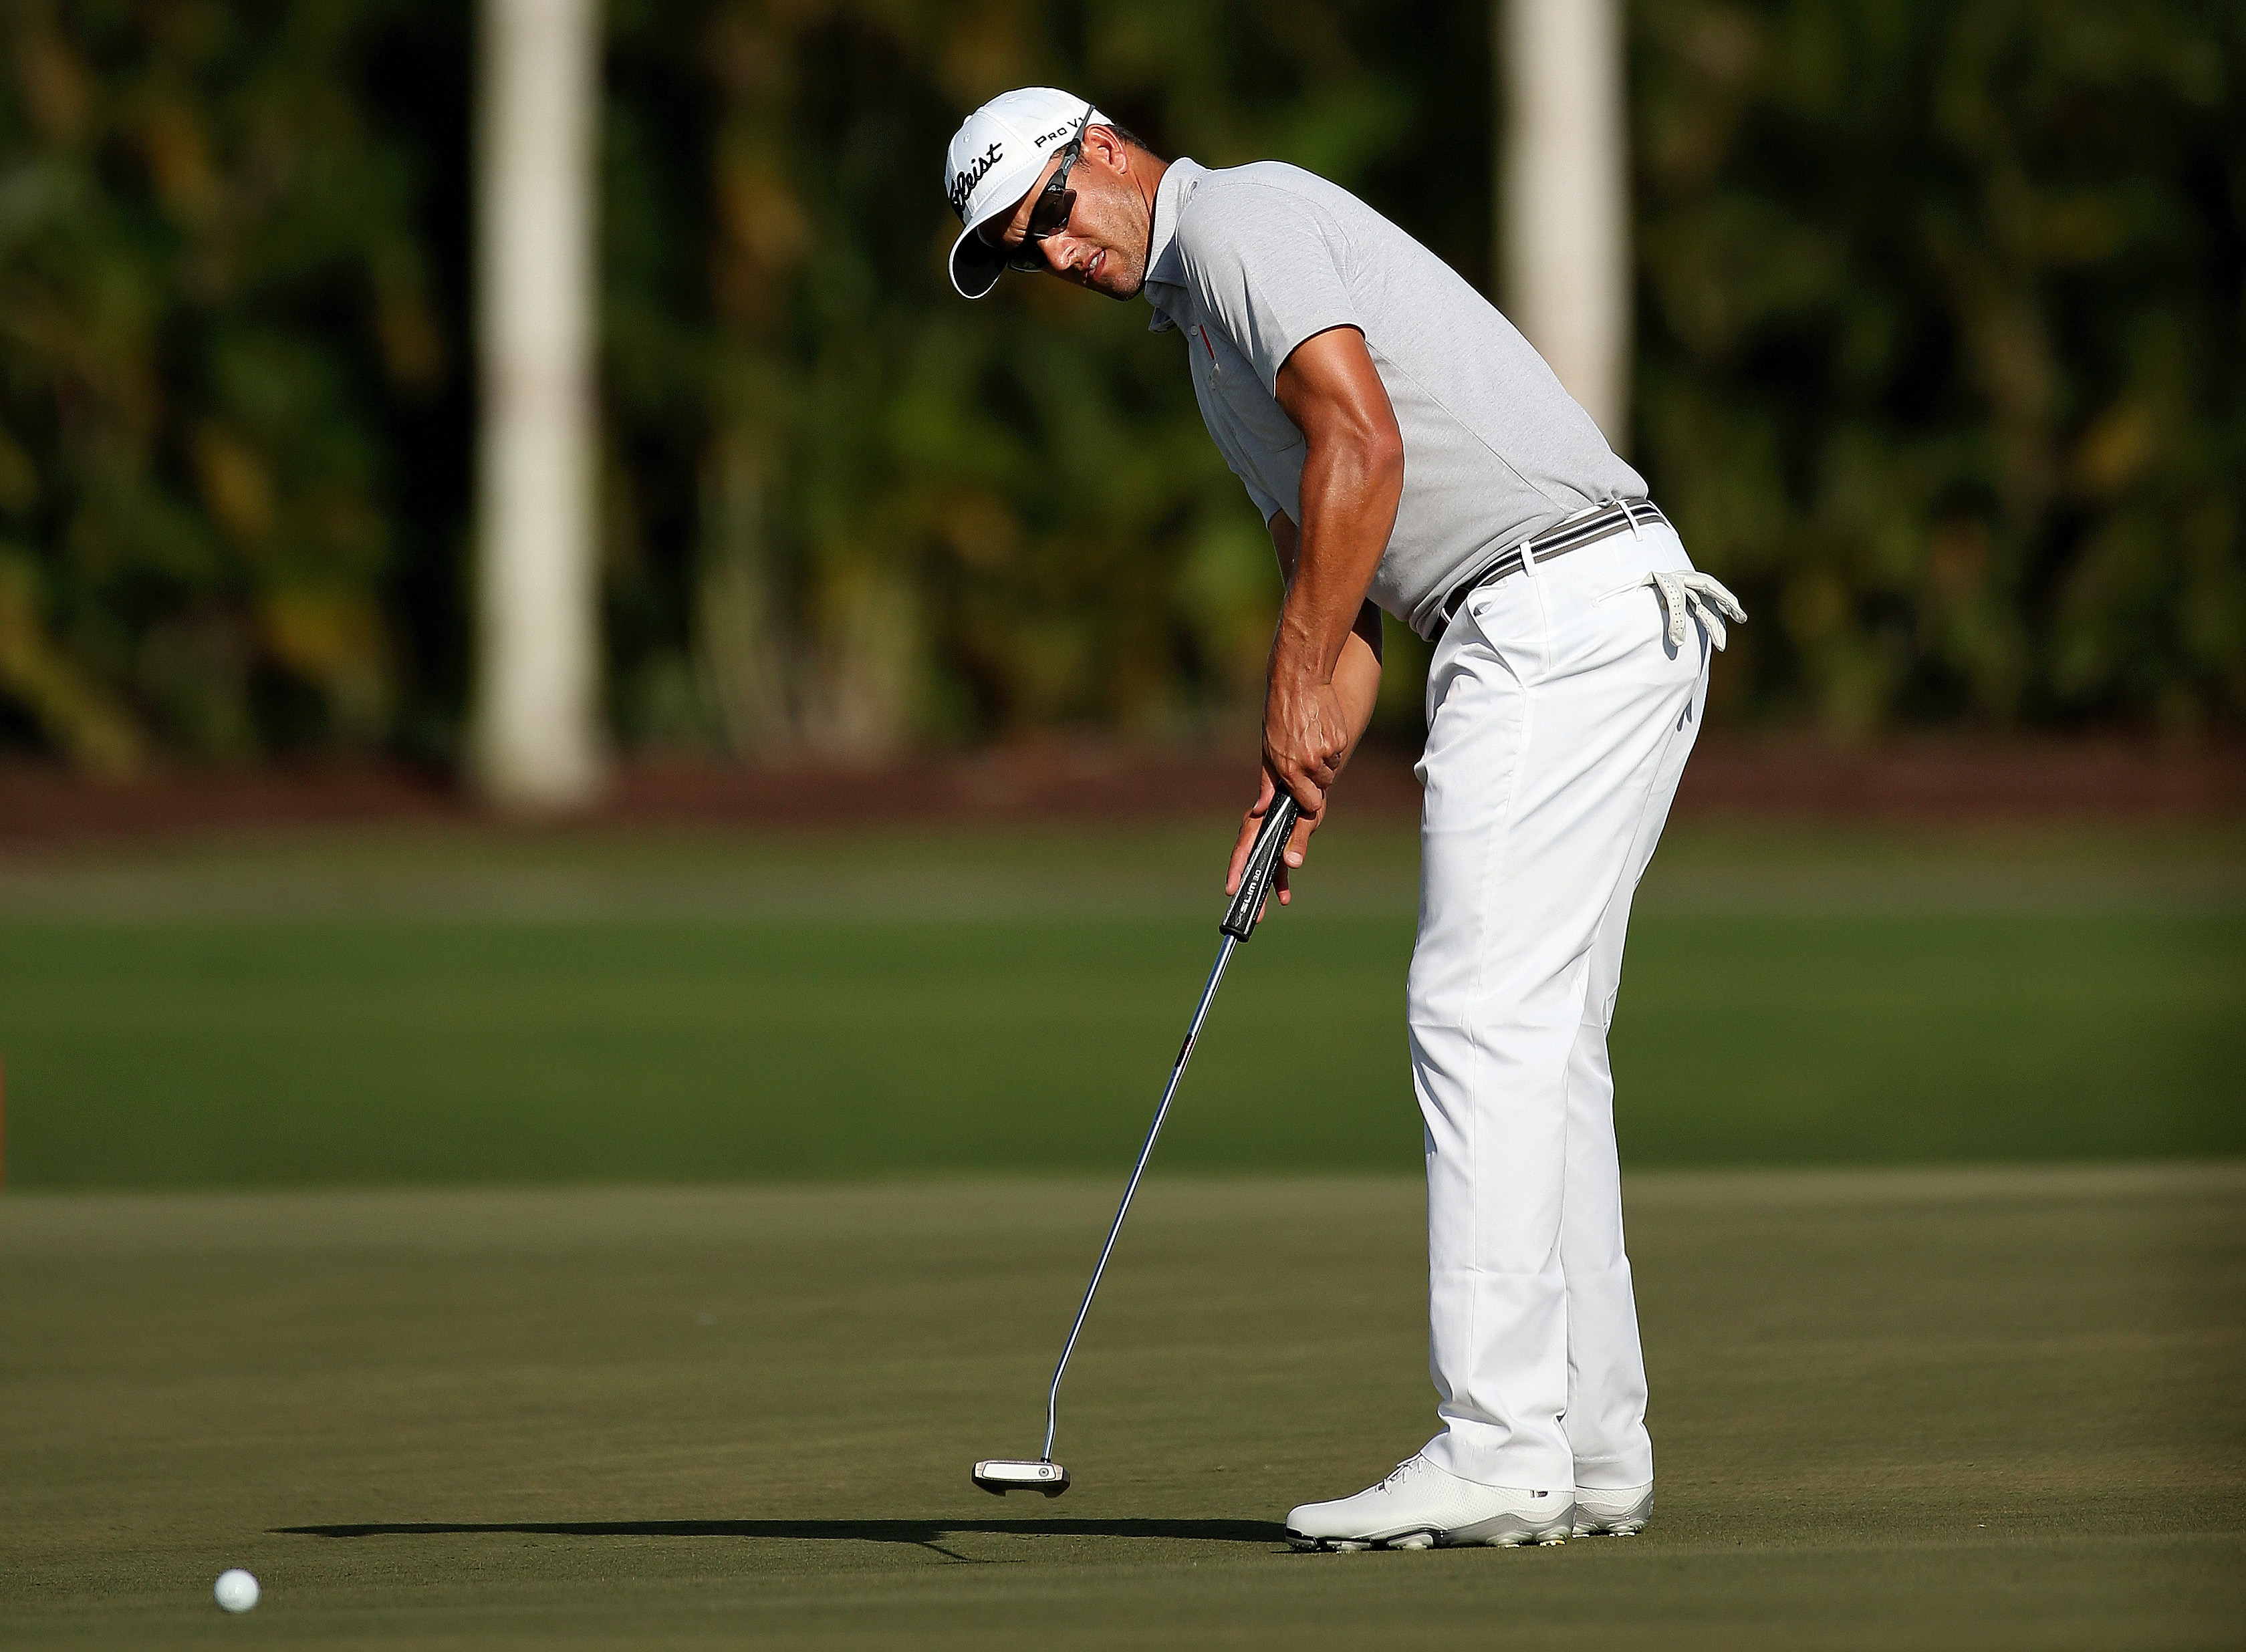 Adam Scott won the 2012 Masters with an anchored putter in the bag (Photo: Getty Images)